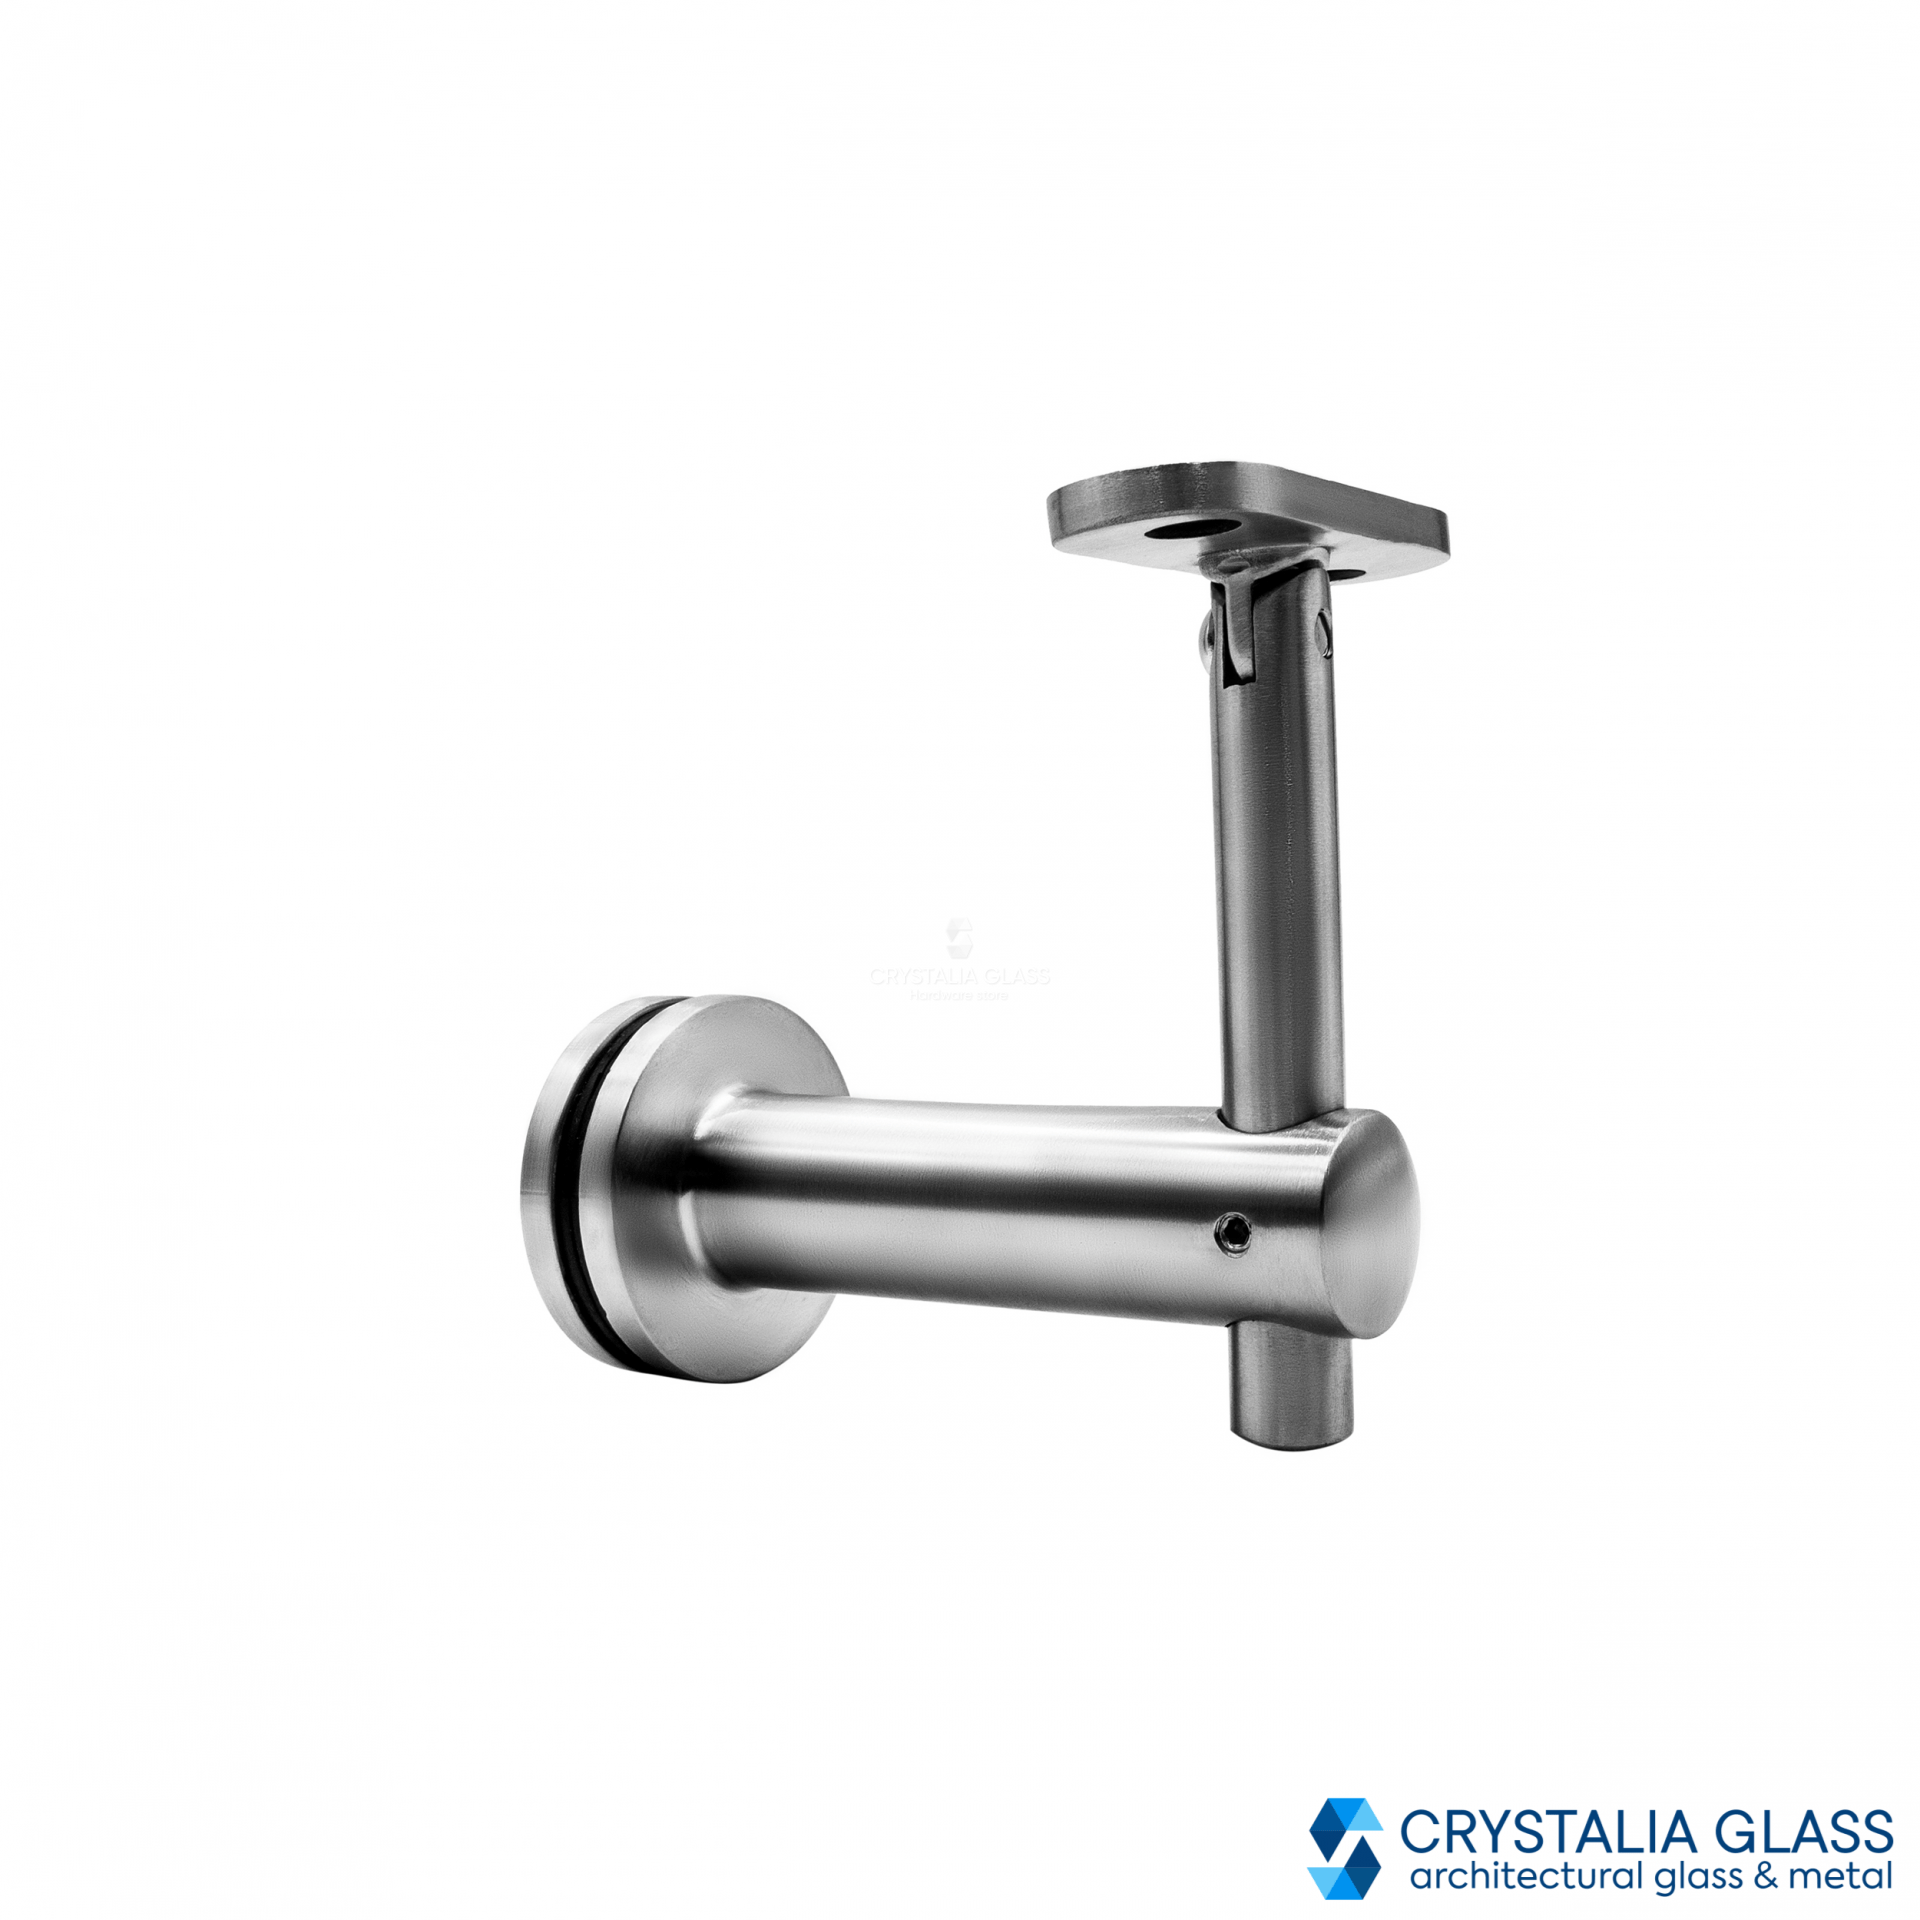 CG Brushed Stainless Glass Mounted Hand Rail Bracket Flat Surface